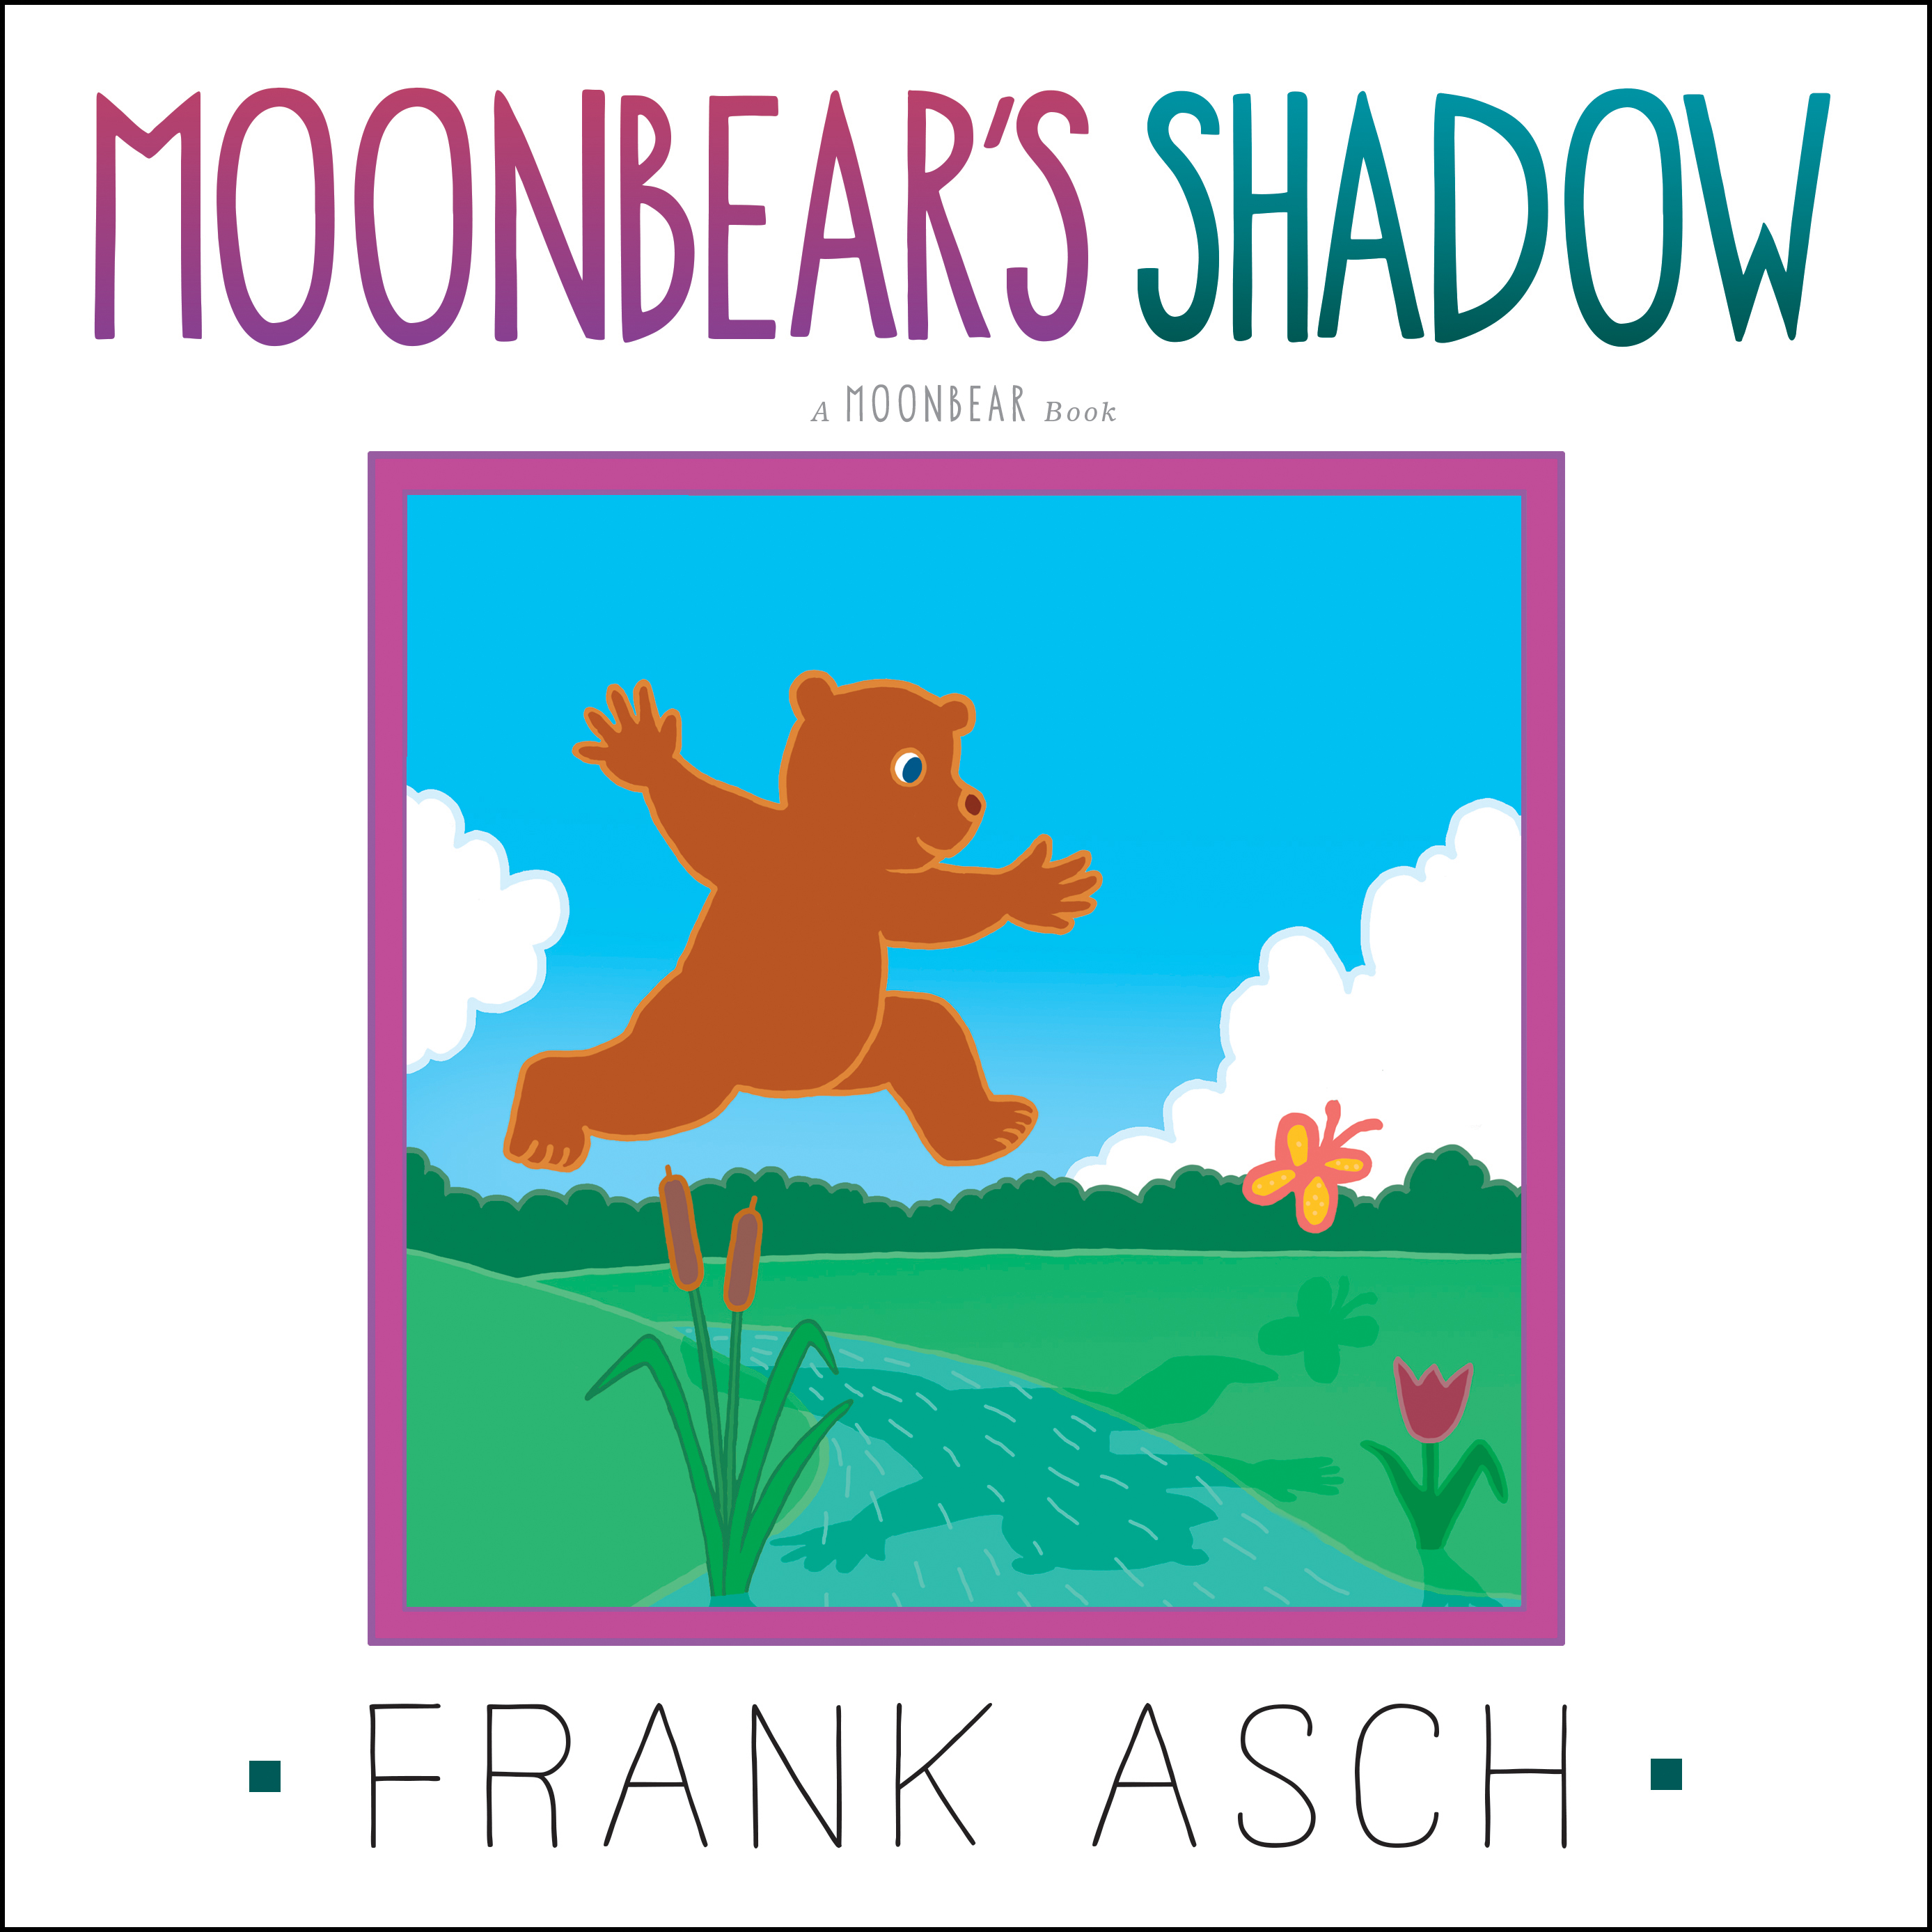 Moonbears-shadow-9781442494268_hr